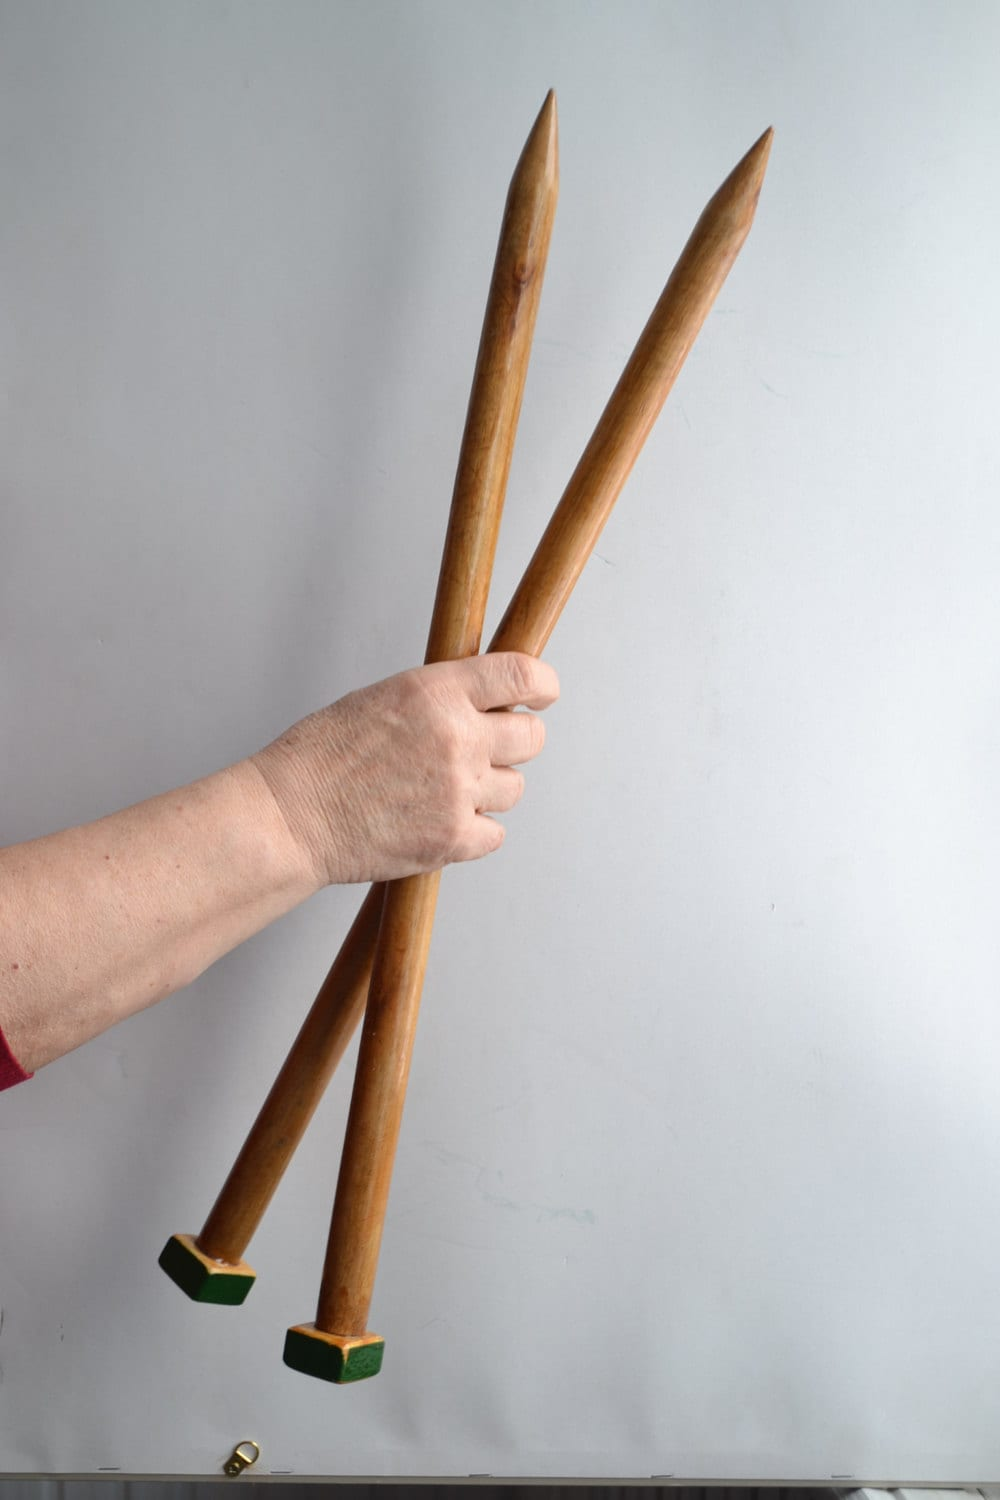 Knitting Needles Mm To Inches : Extreme knitting needles size mm inch cm